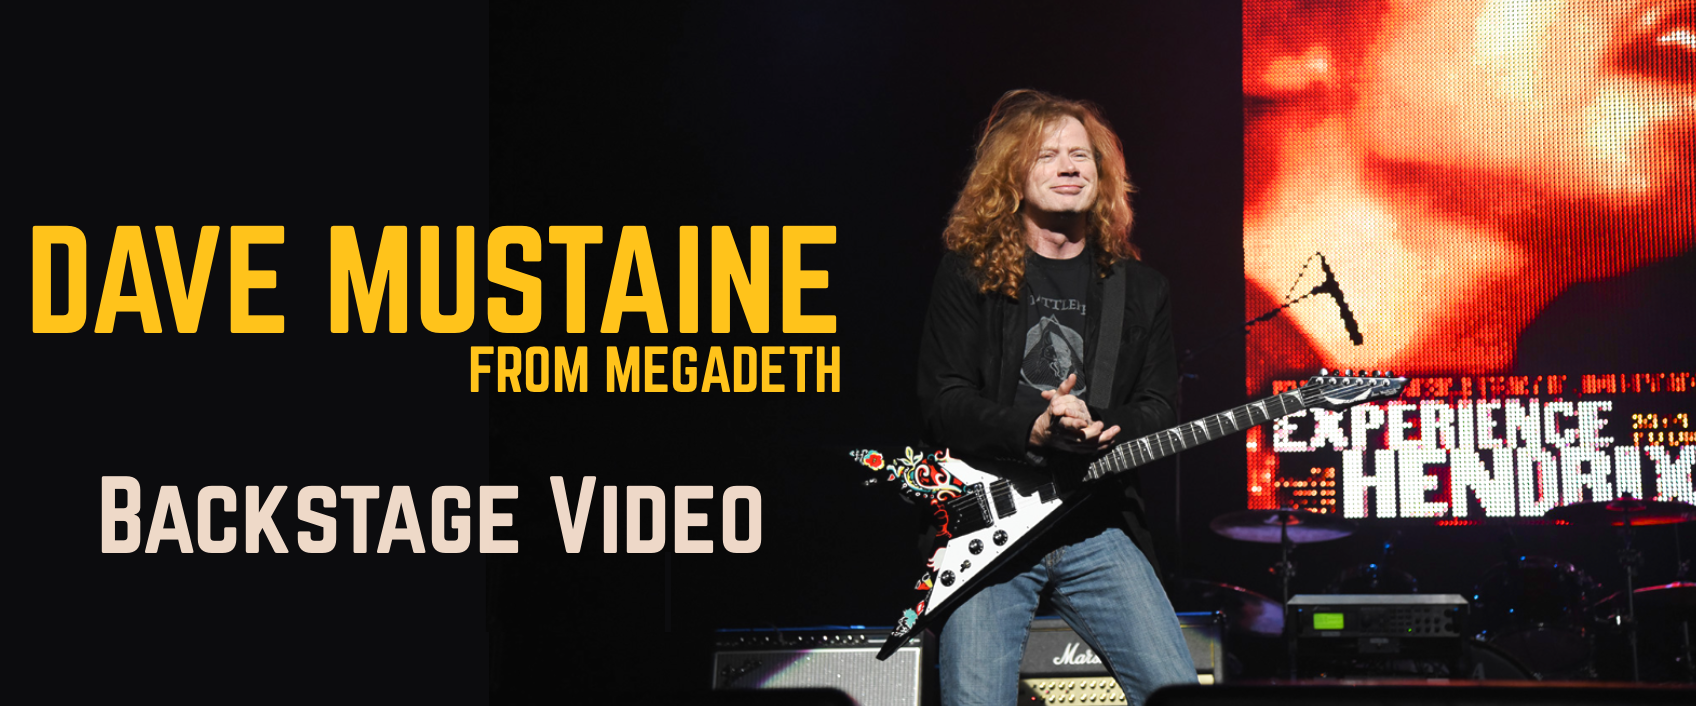 Come backstage with Dave Mustaine from Megadeth